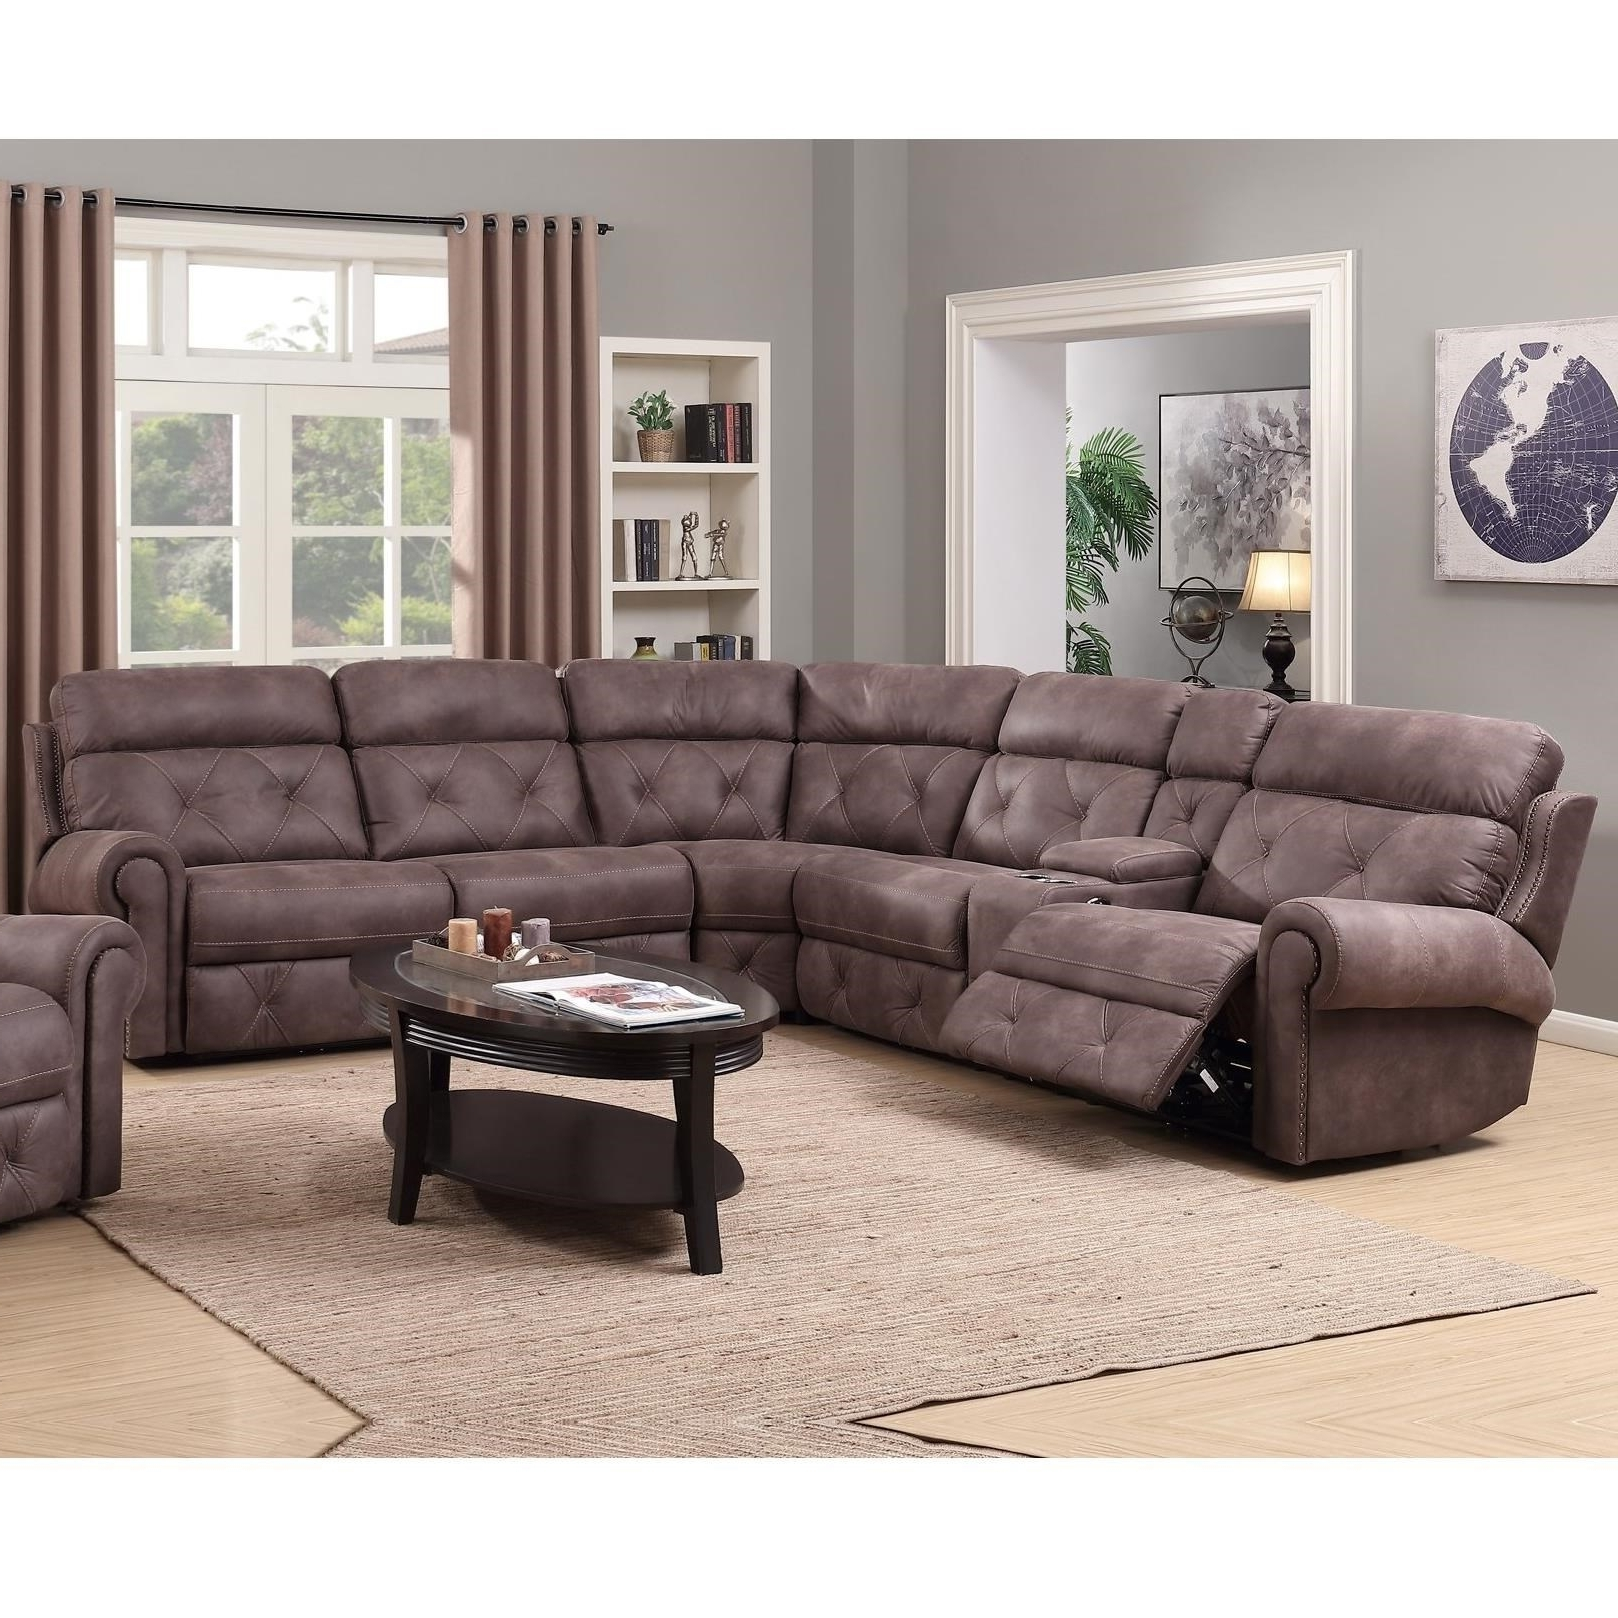 Murfreesboro Tn Sectional Sofas Pertaining To Trendy Furniture: Ashley Furniture N Nashville Furniture Furniture Stores (View 16 of 20)